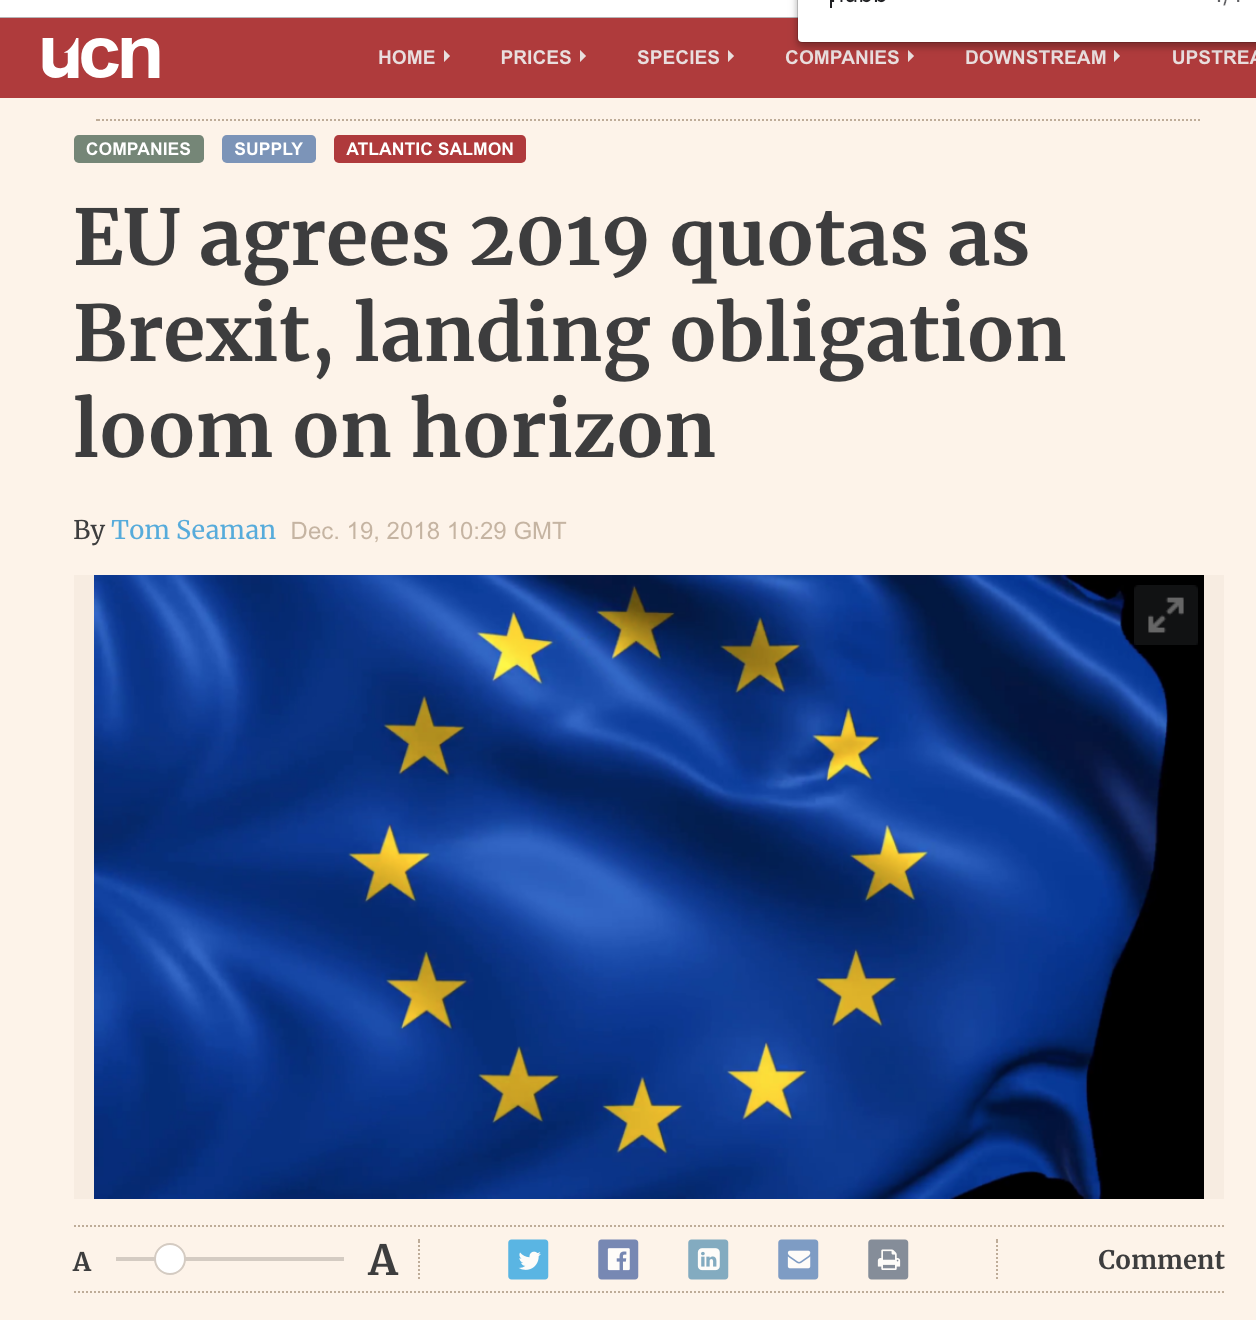 Undercurrent: EU agrees 2019 quotas as Brexit, landing obligation loom on horizon